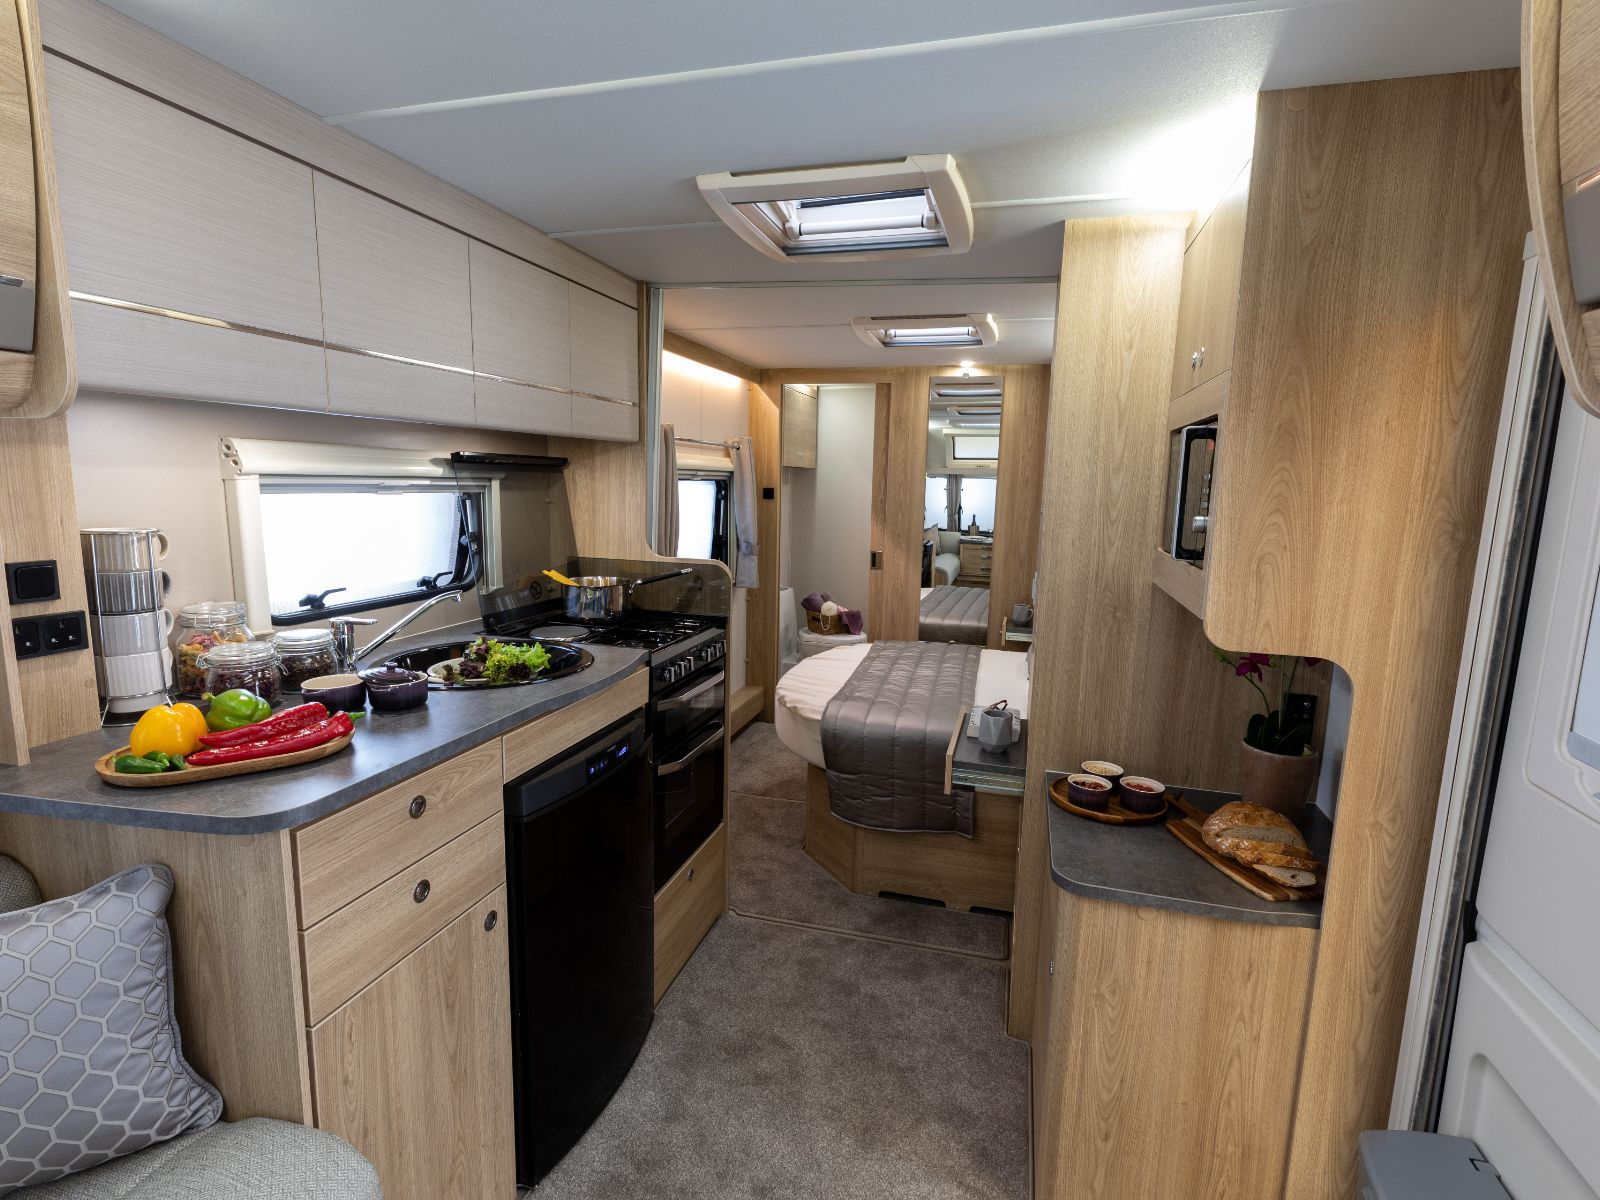 Kitchen layout with overhead storage, fridge and oven with food resting on the counter and a view of the bedroom with double bed'